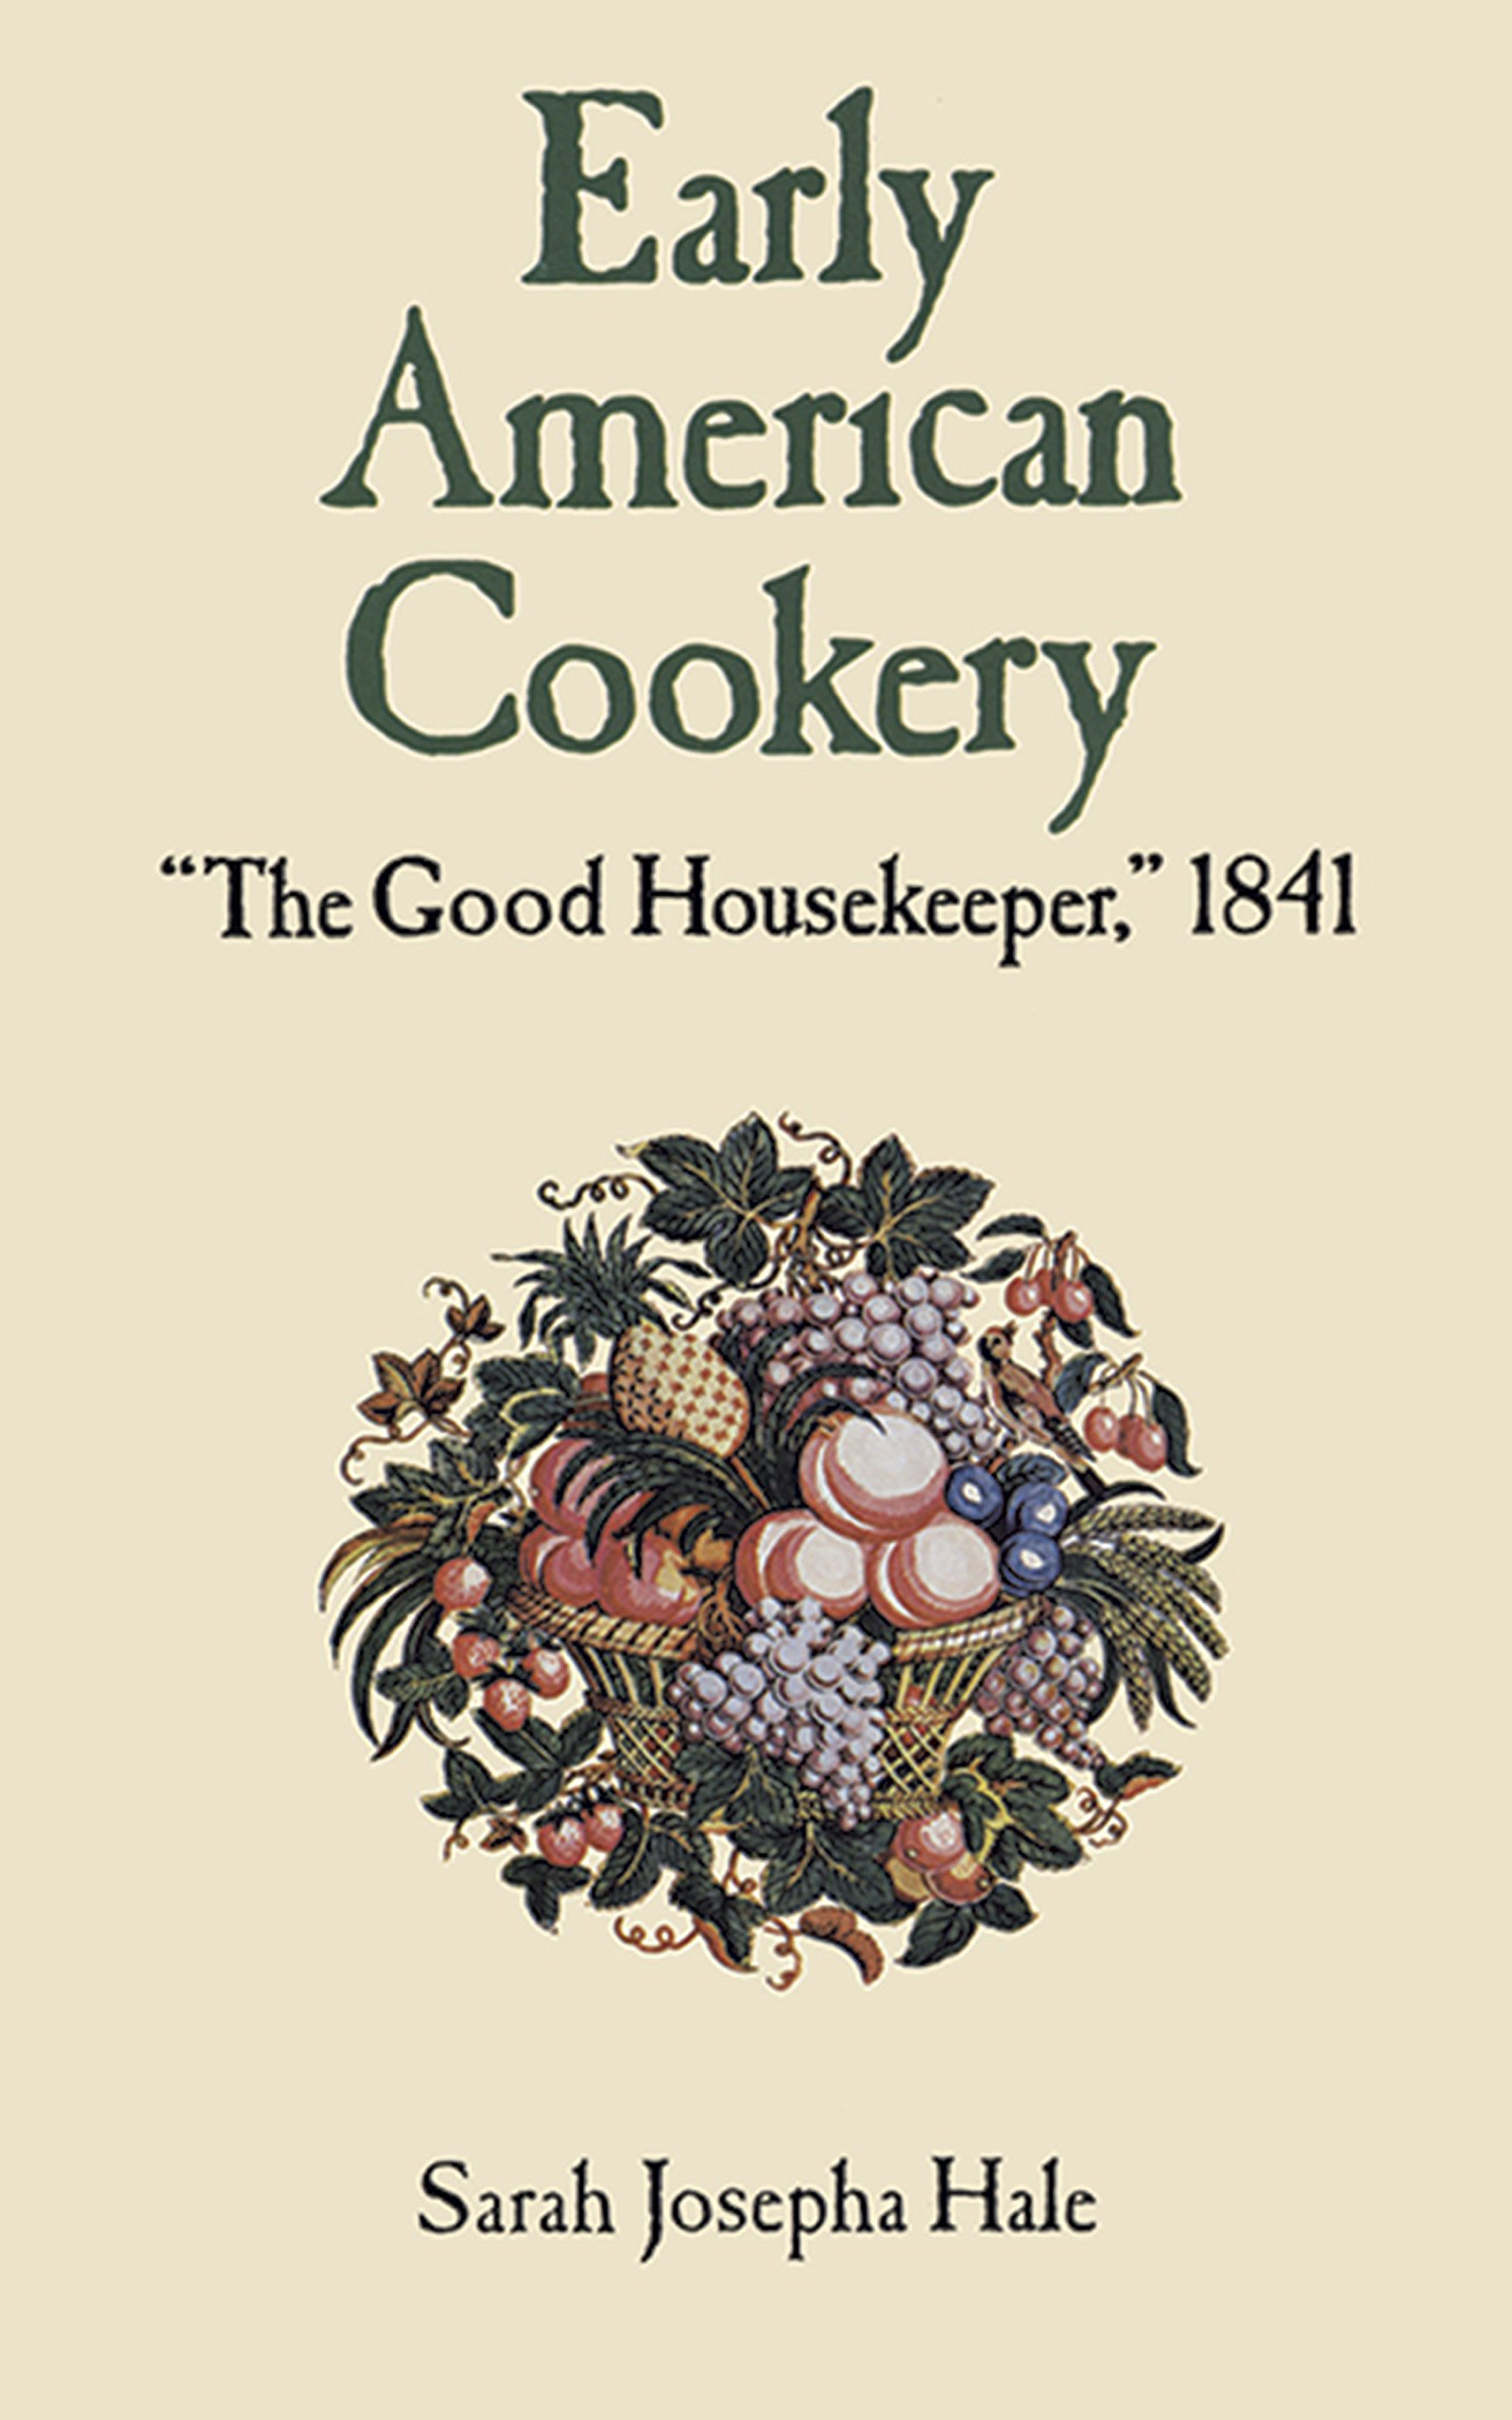 Early American Cookery: 'The Good Housekeeper,' 1841